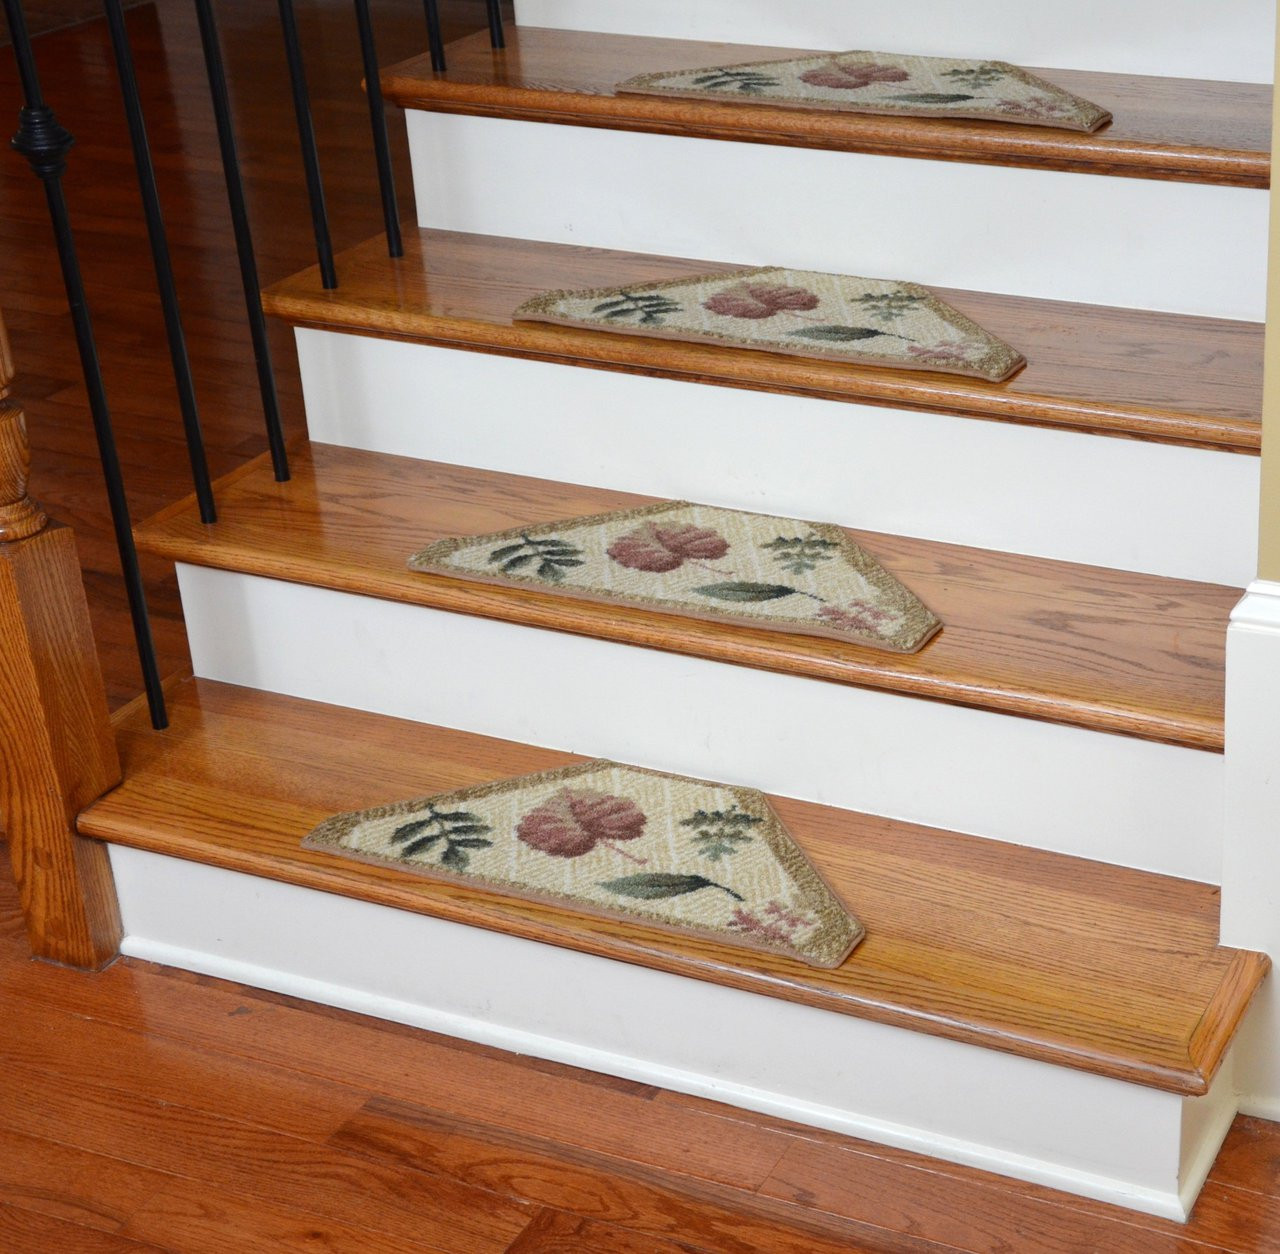 High Quality Washable Non Skid Carpet Stair Treads   Beige Leaf (13)